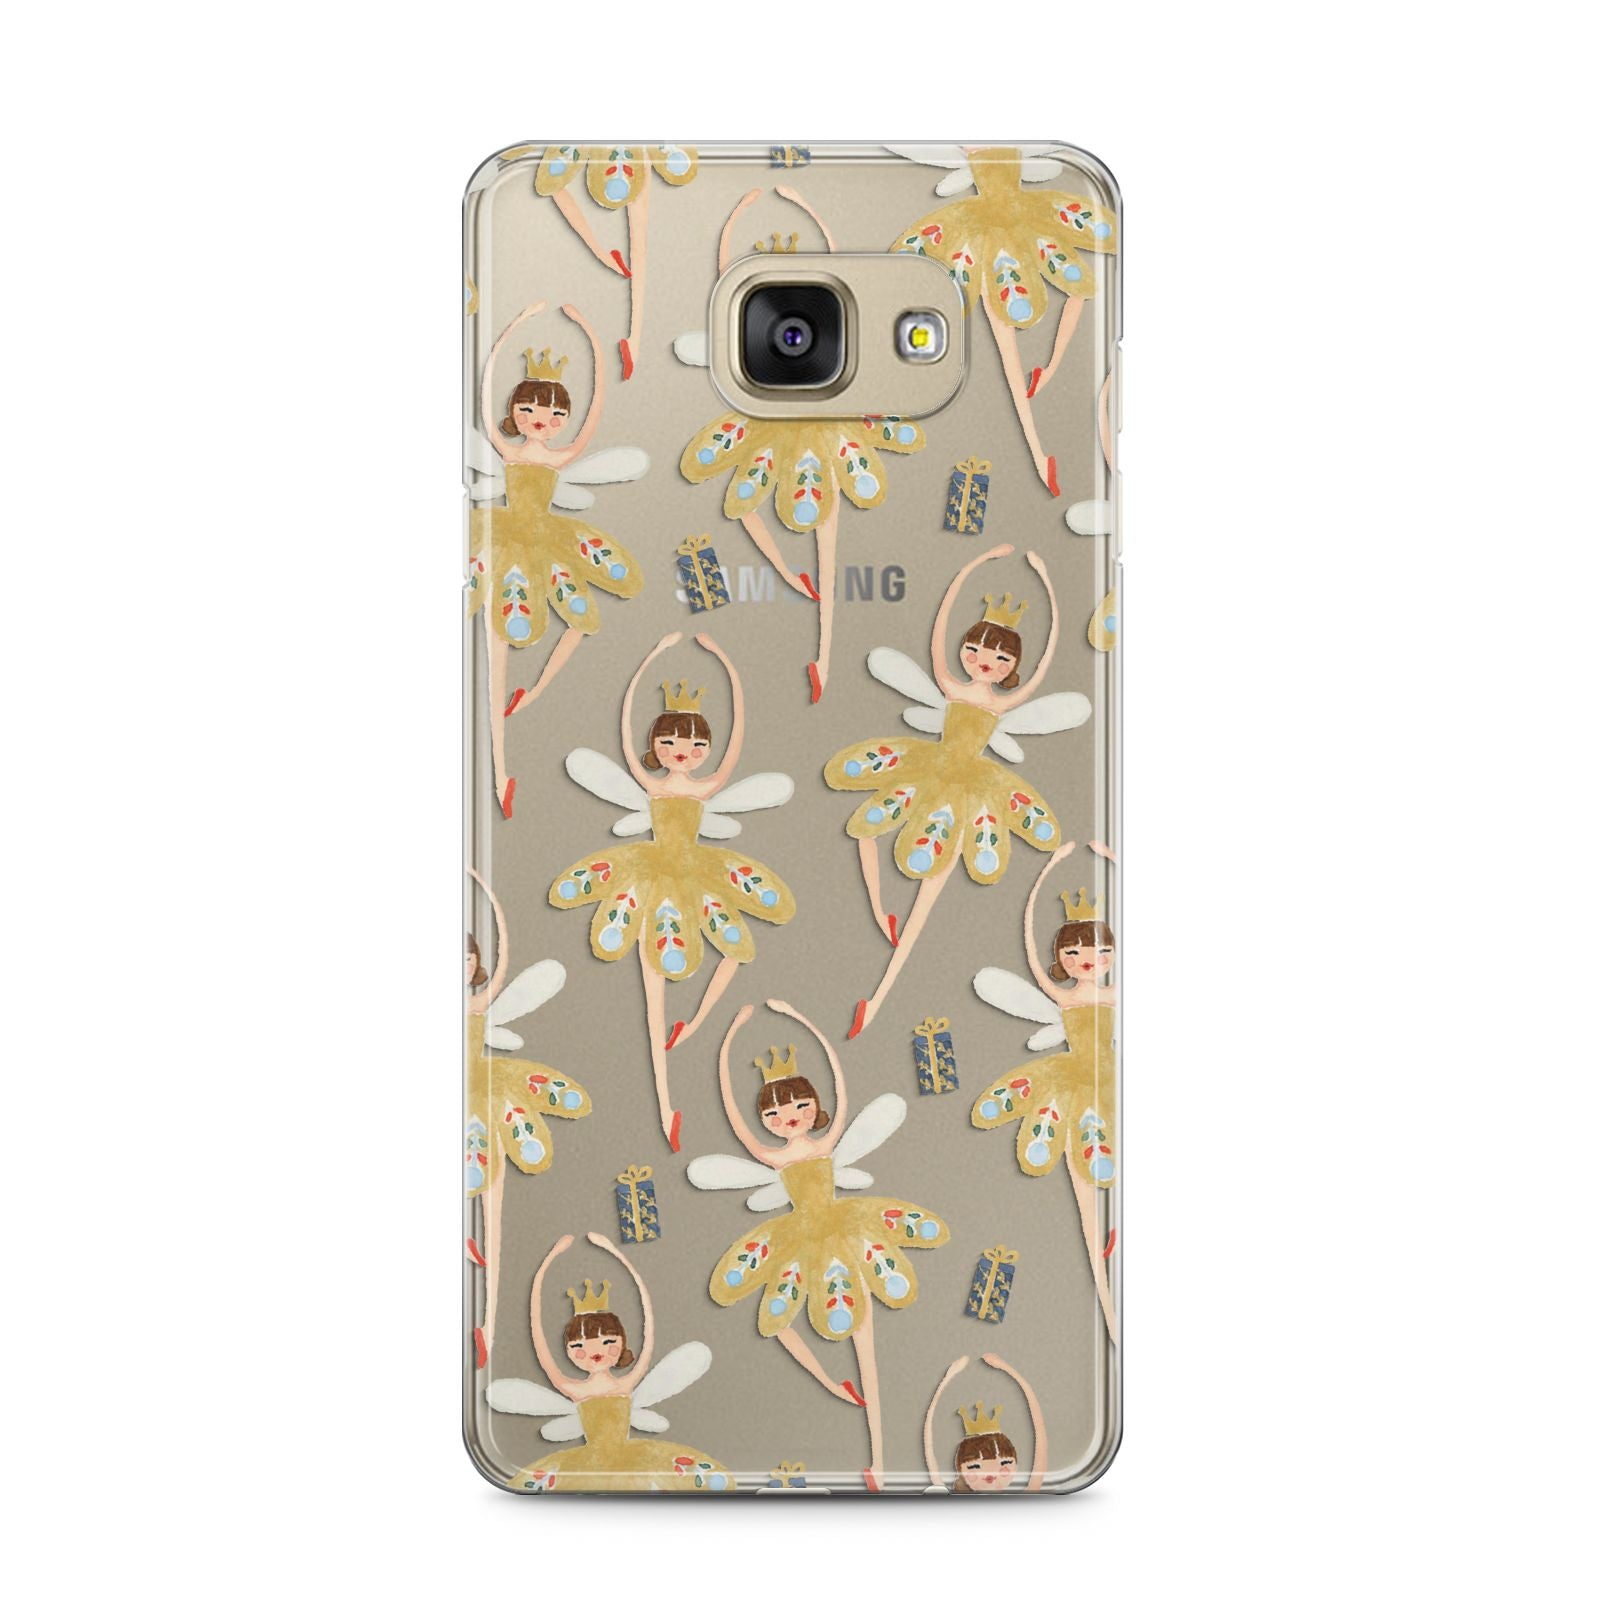 Dancing ballerina princess Samsung Galaxy A5 2016 Case on gold phone